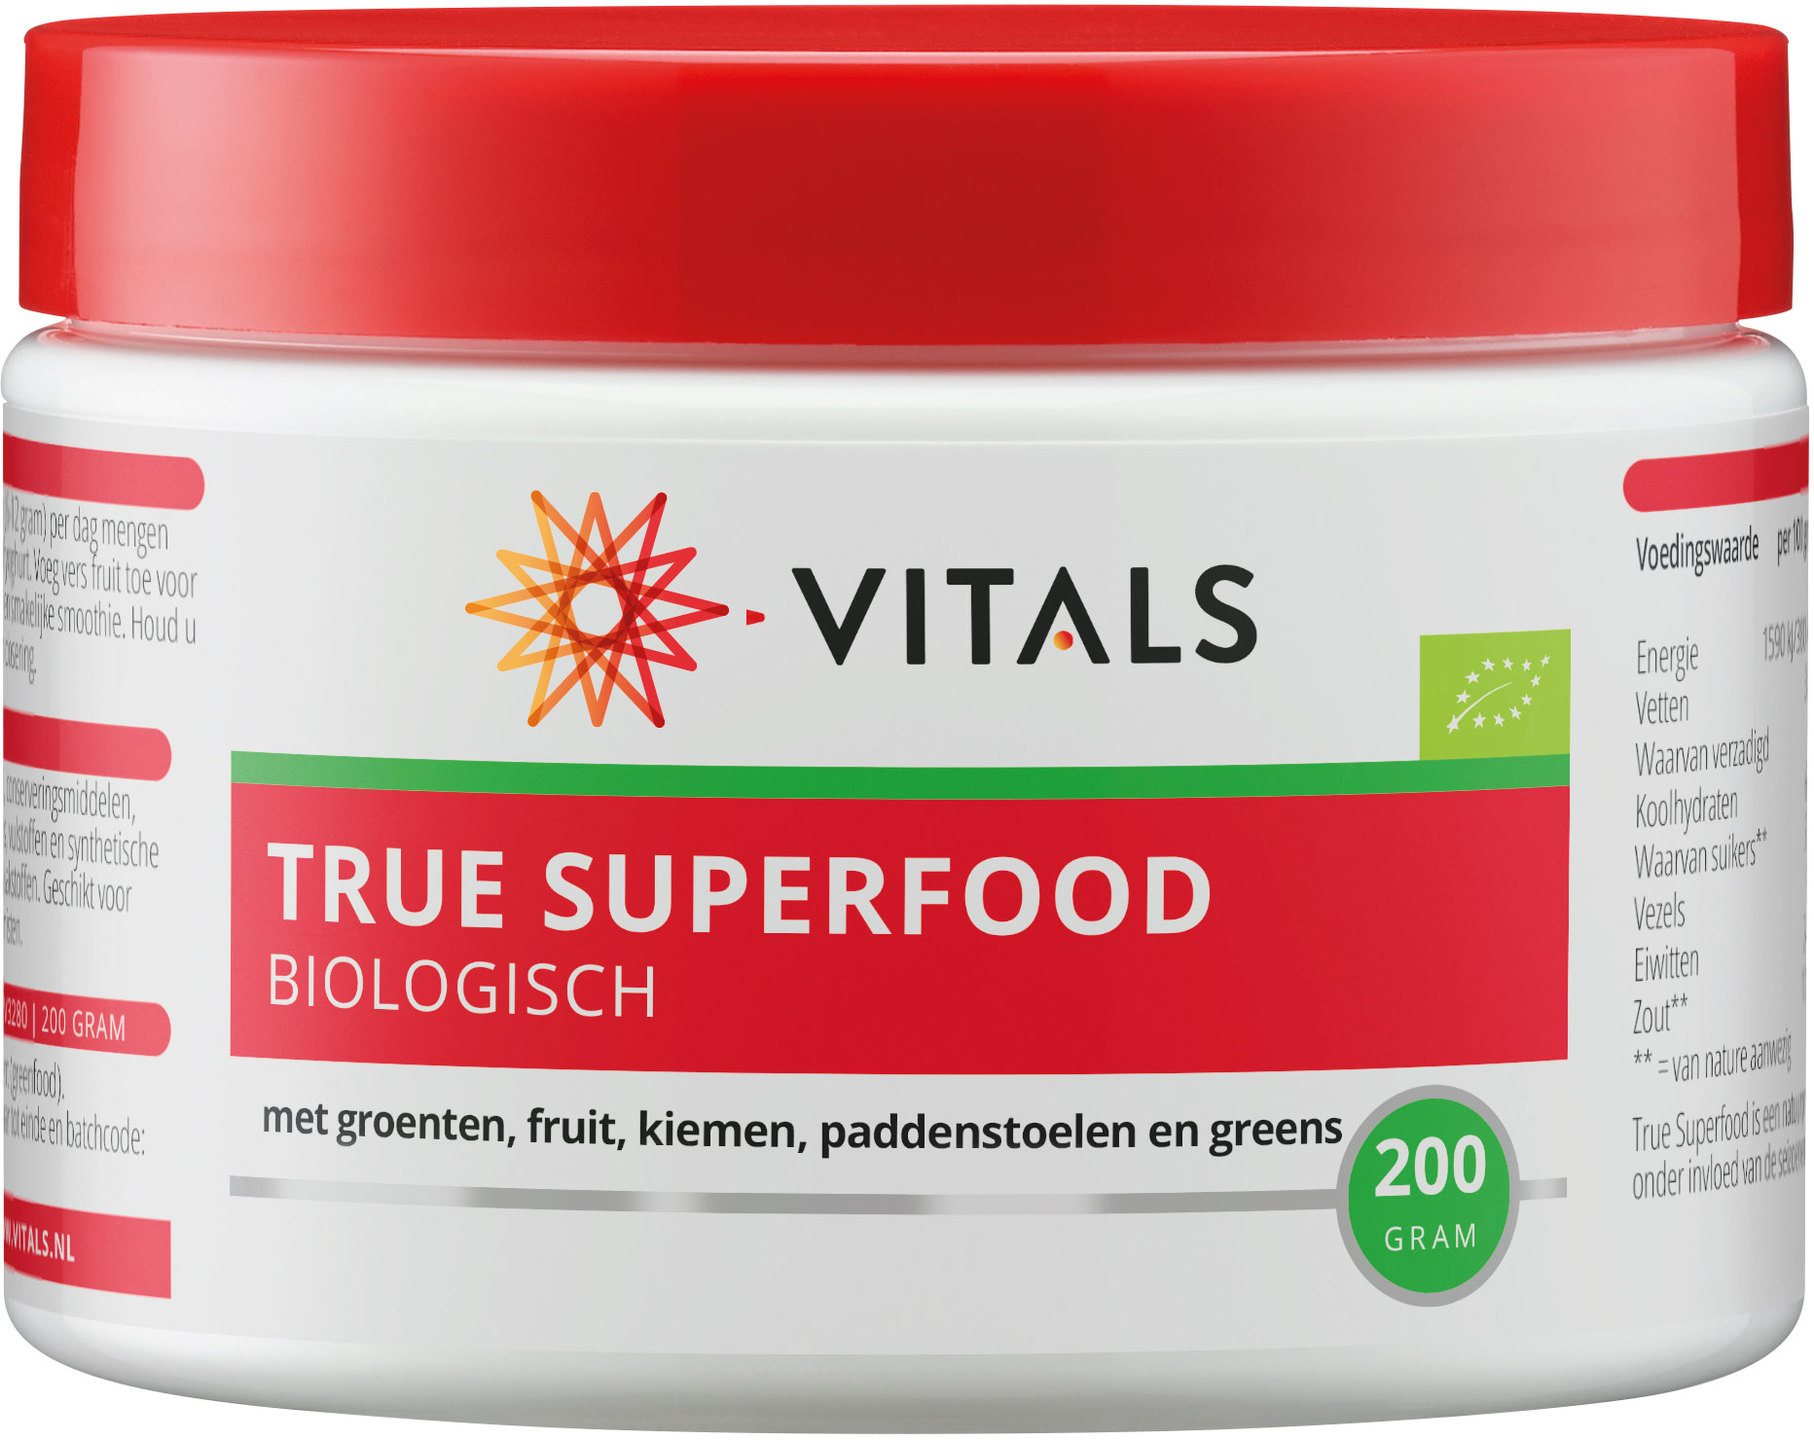 Biologische Vitals True superfood 200 gr